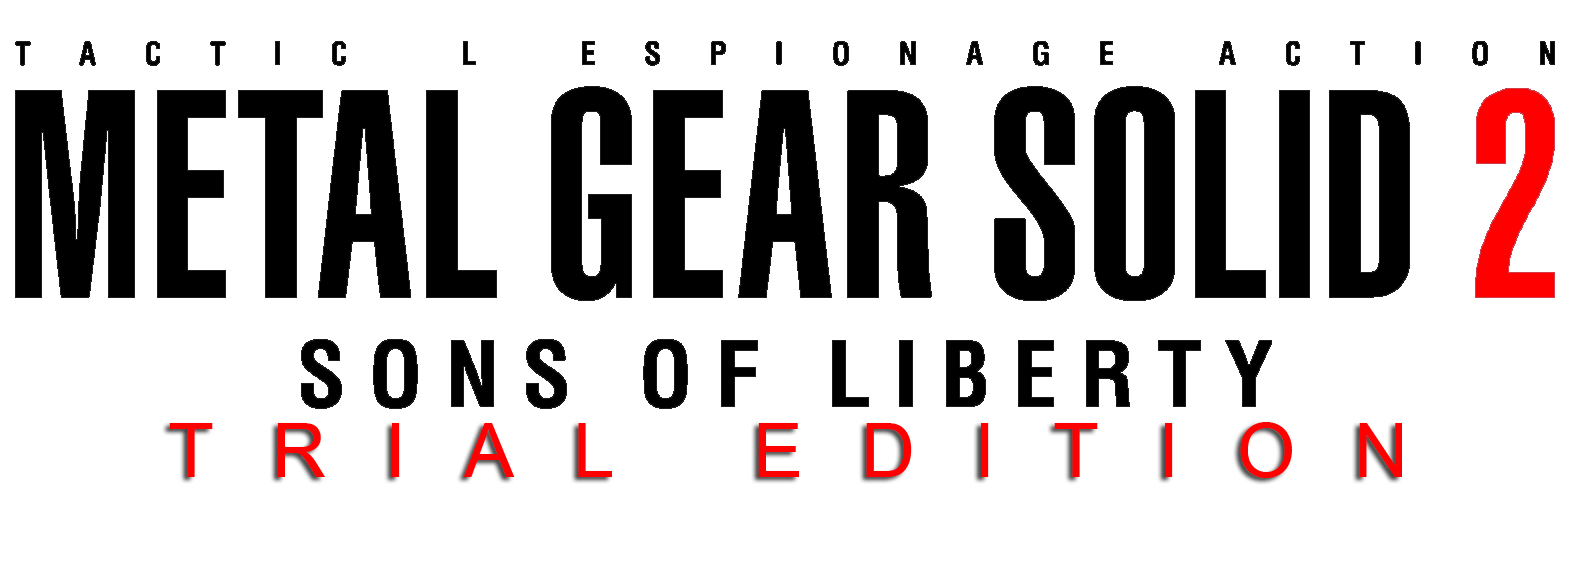 Metal gear solid 5 logo png. Image trial edition wiki